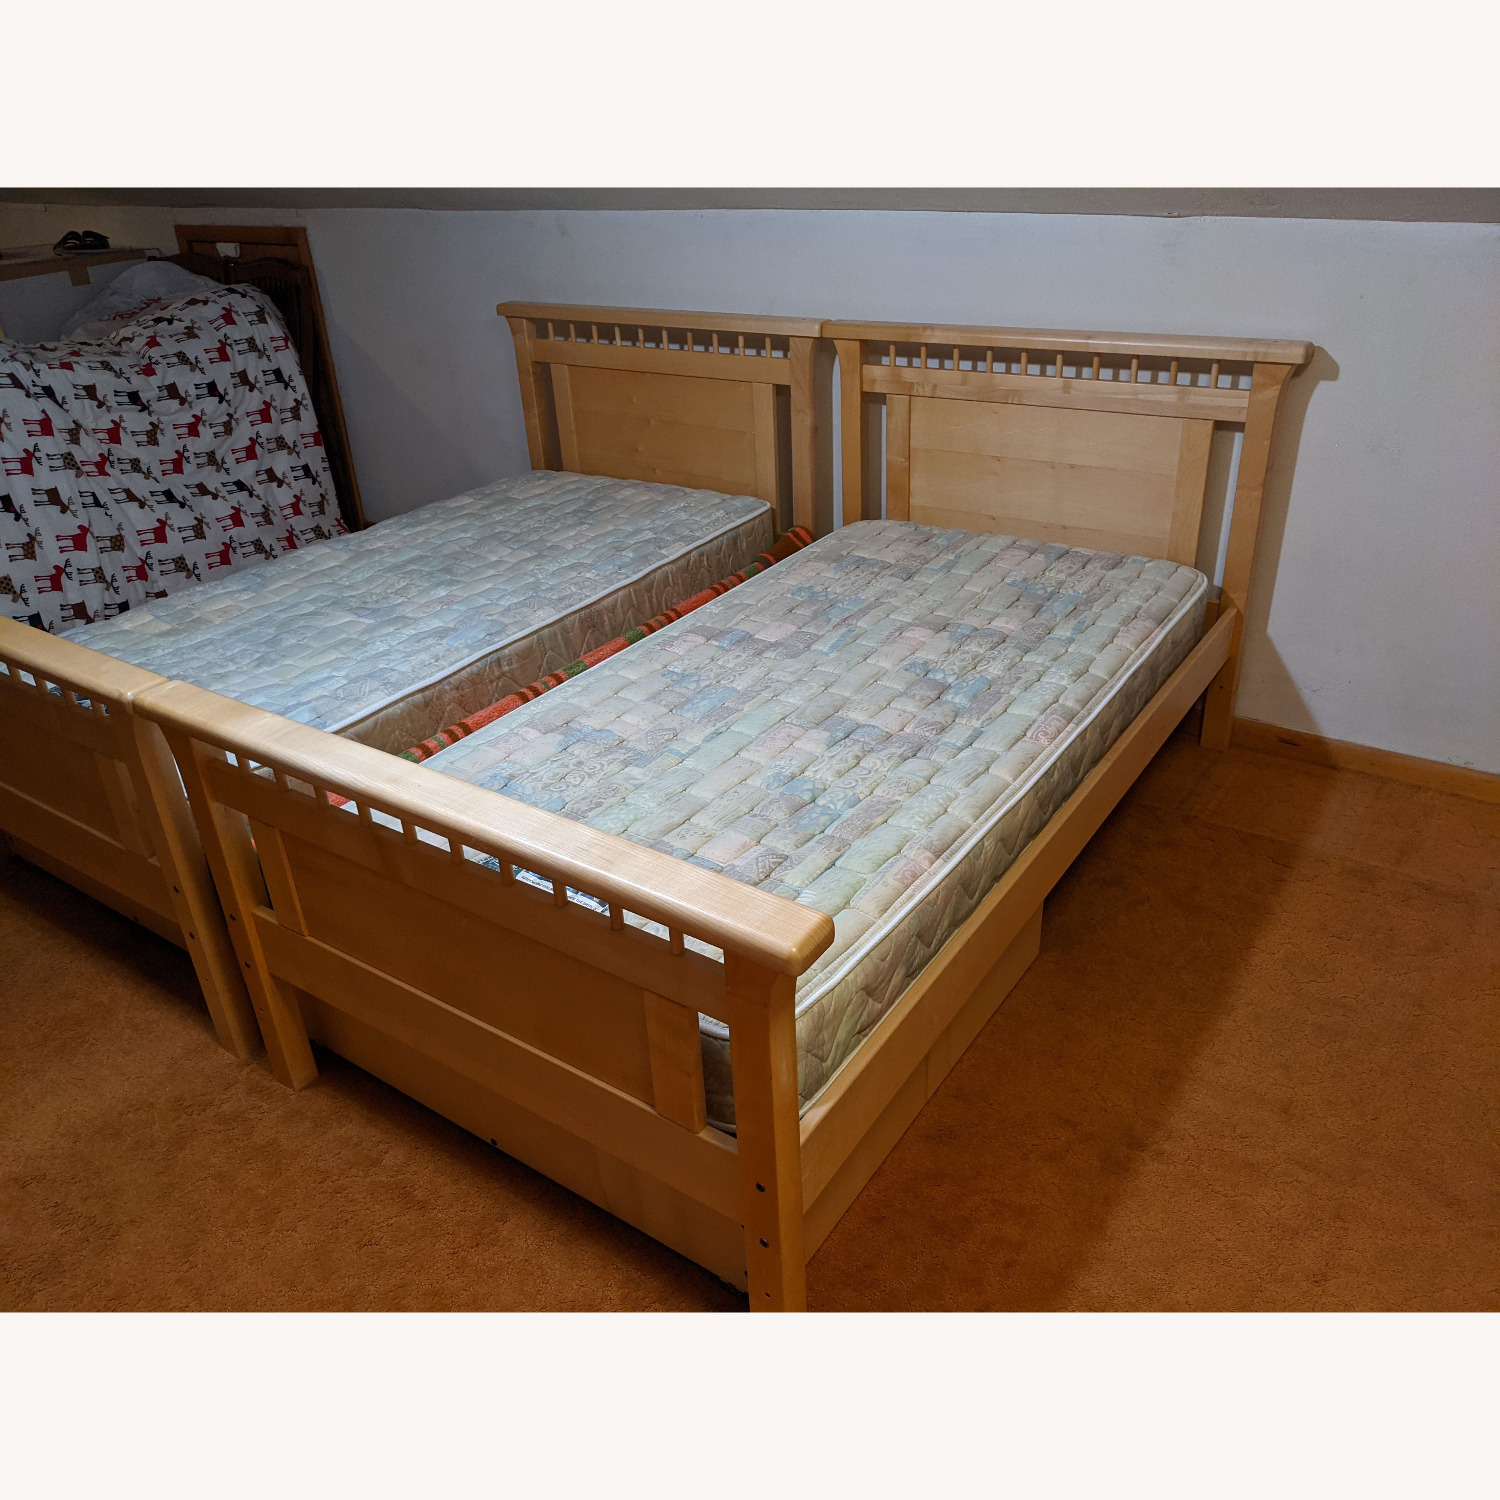 Solid Wood Bunk Beds w/ Under Bed Storage Drawers - image-6